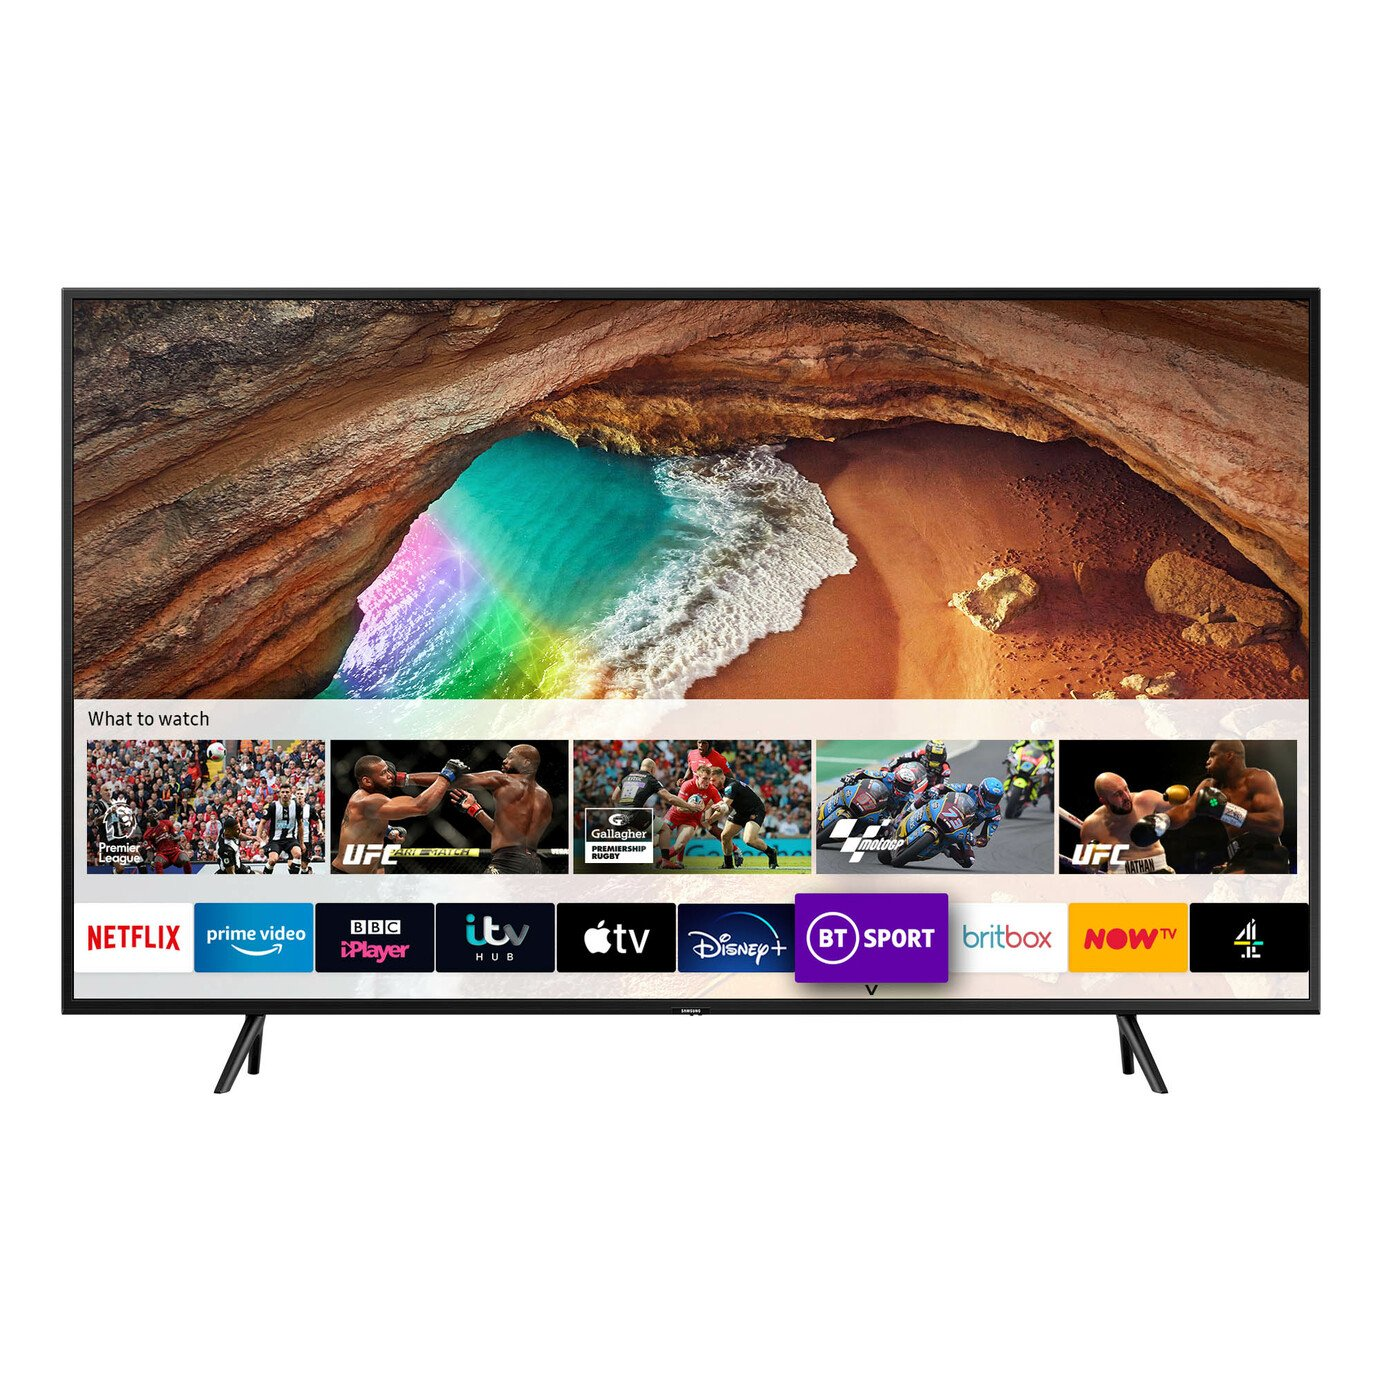 Samsung 43 Inch QLED Smart 4K UHD TV with HDR review